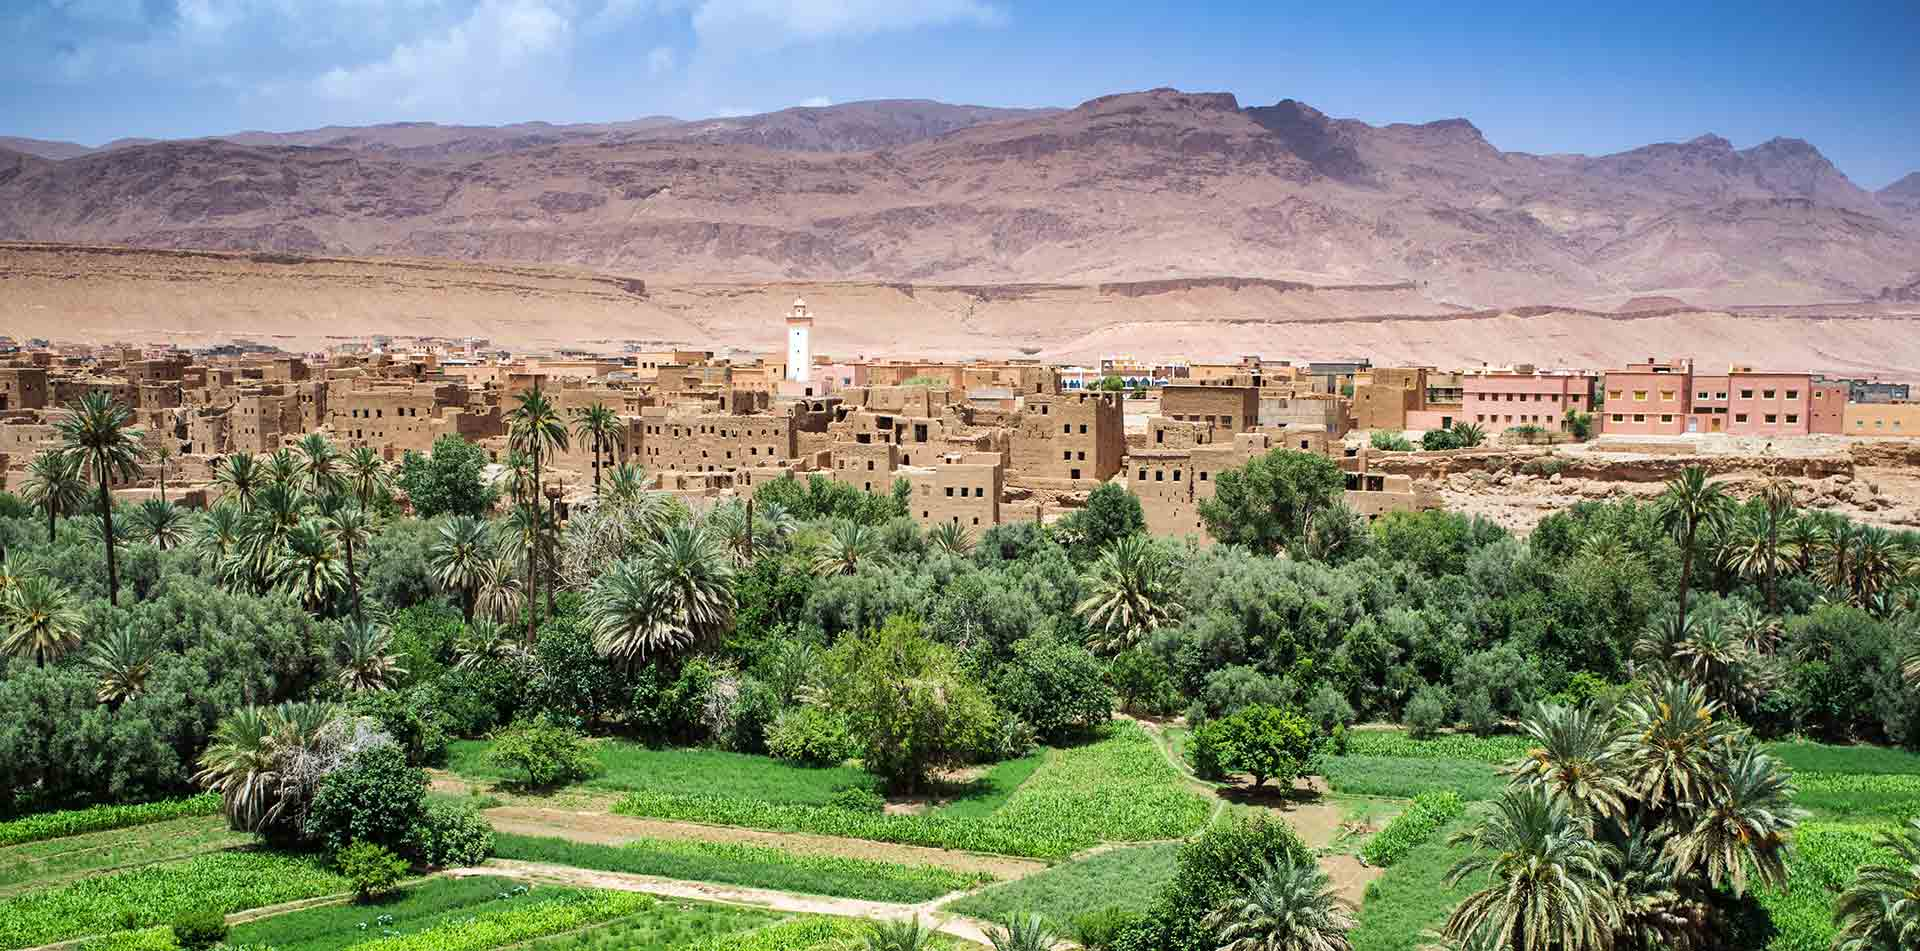 Africa Morocco Tinghir Dades Valley lush green oasis rugged mountains scenic mud-brick town  - luxury vacation destinations